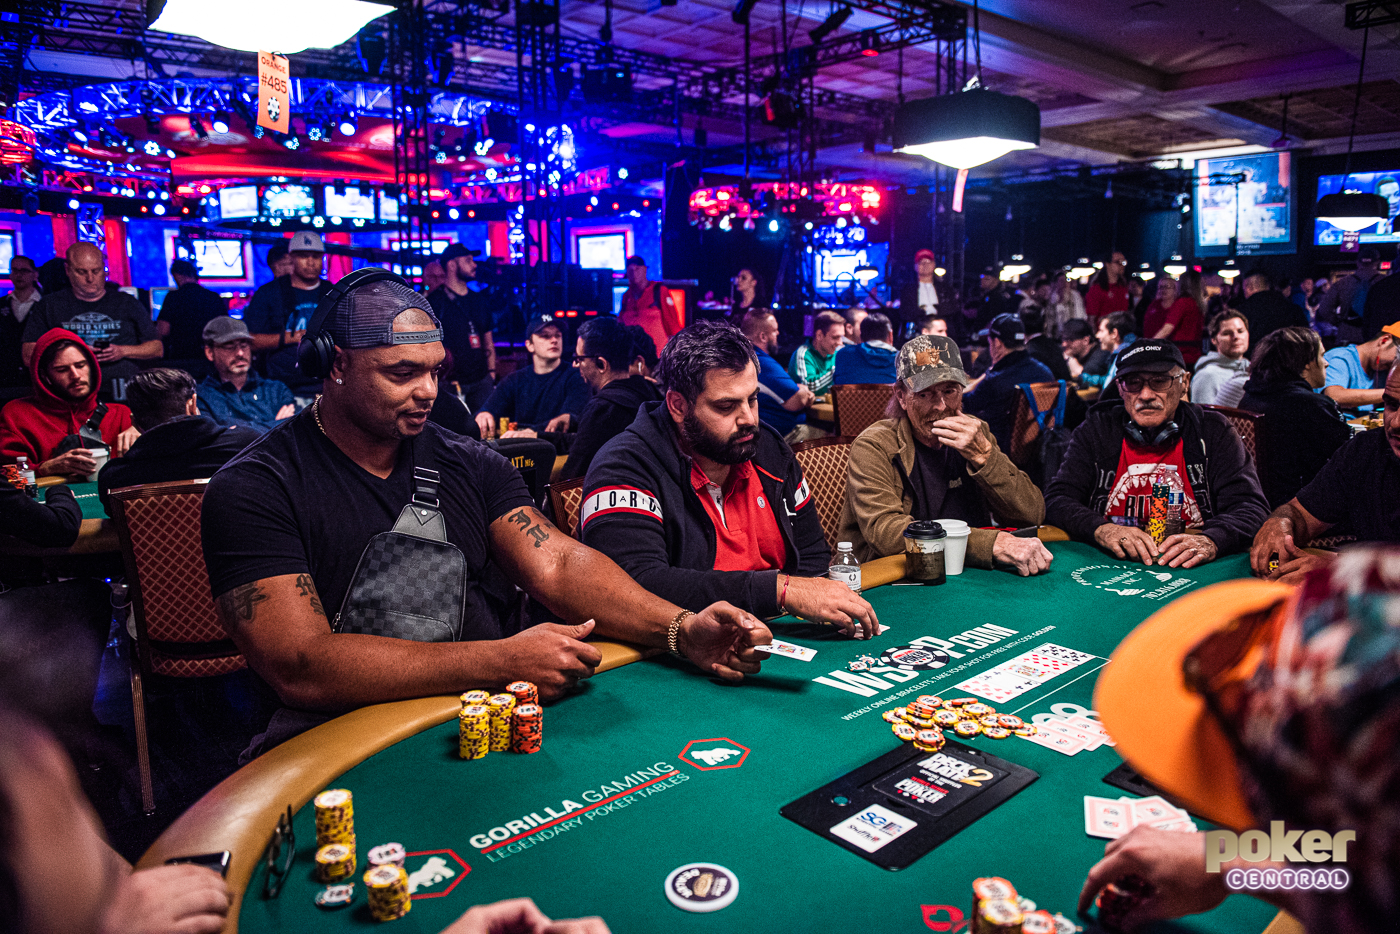 Seymour's WSOP run comes to an end